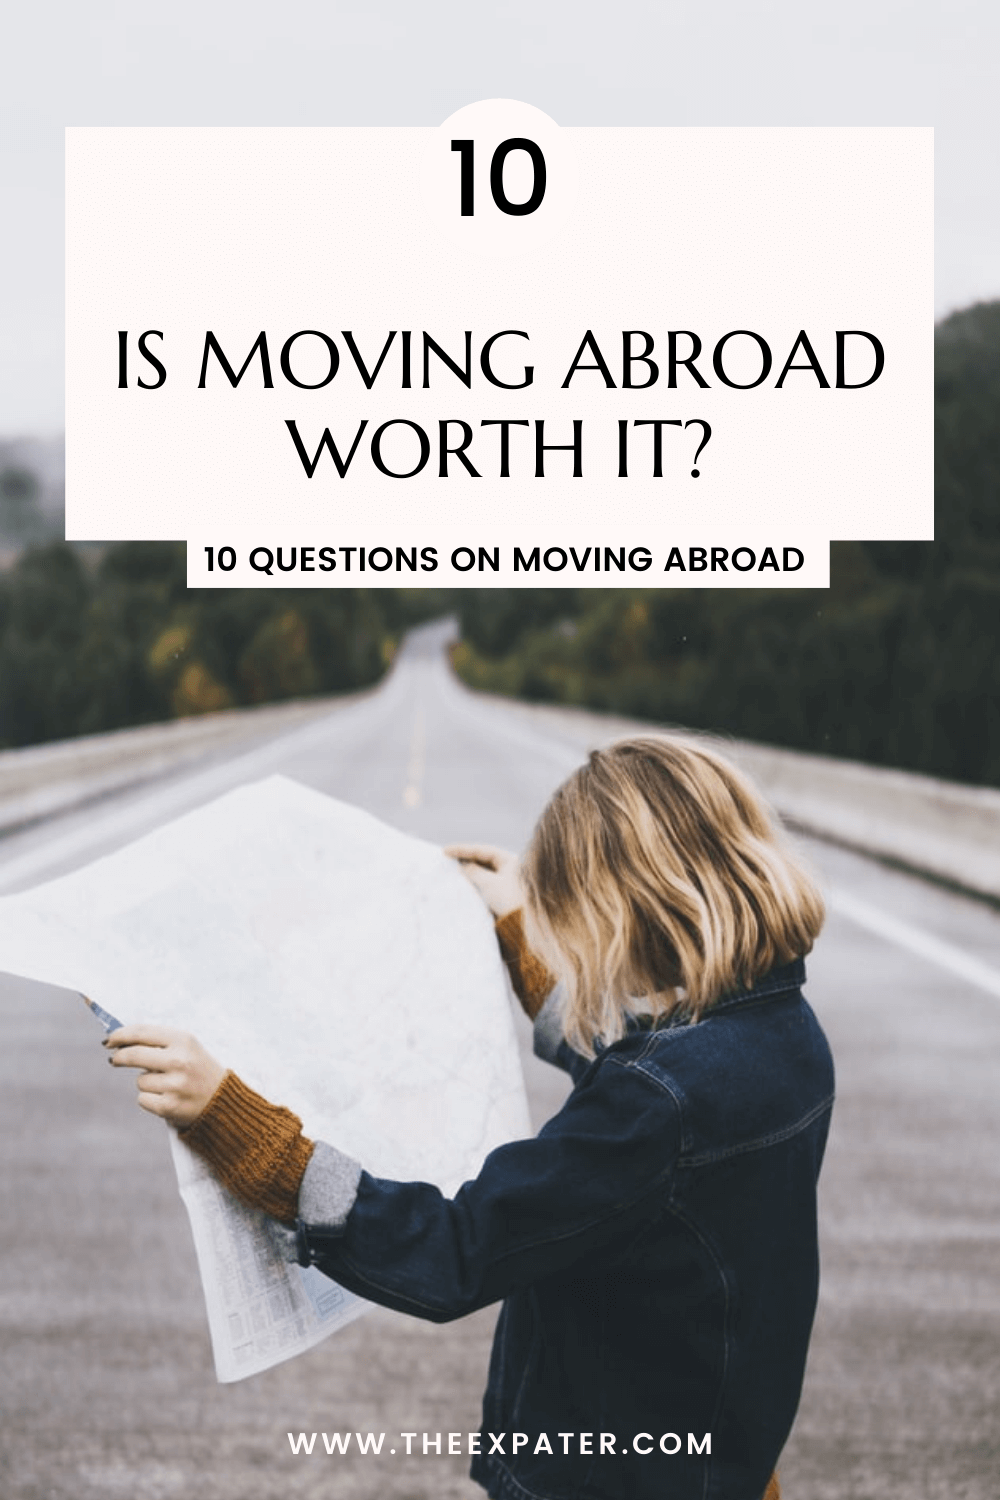 Is moving abroad worth it?